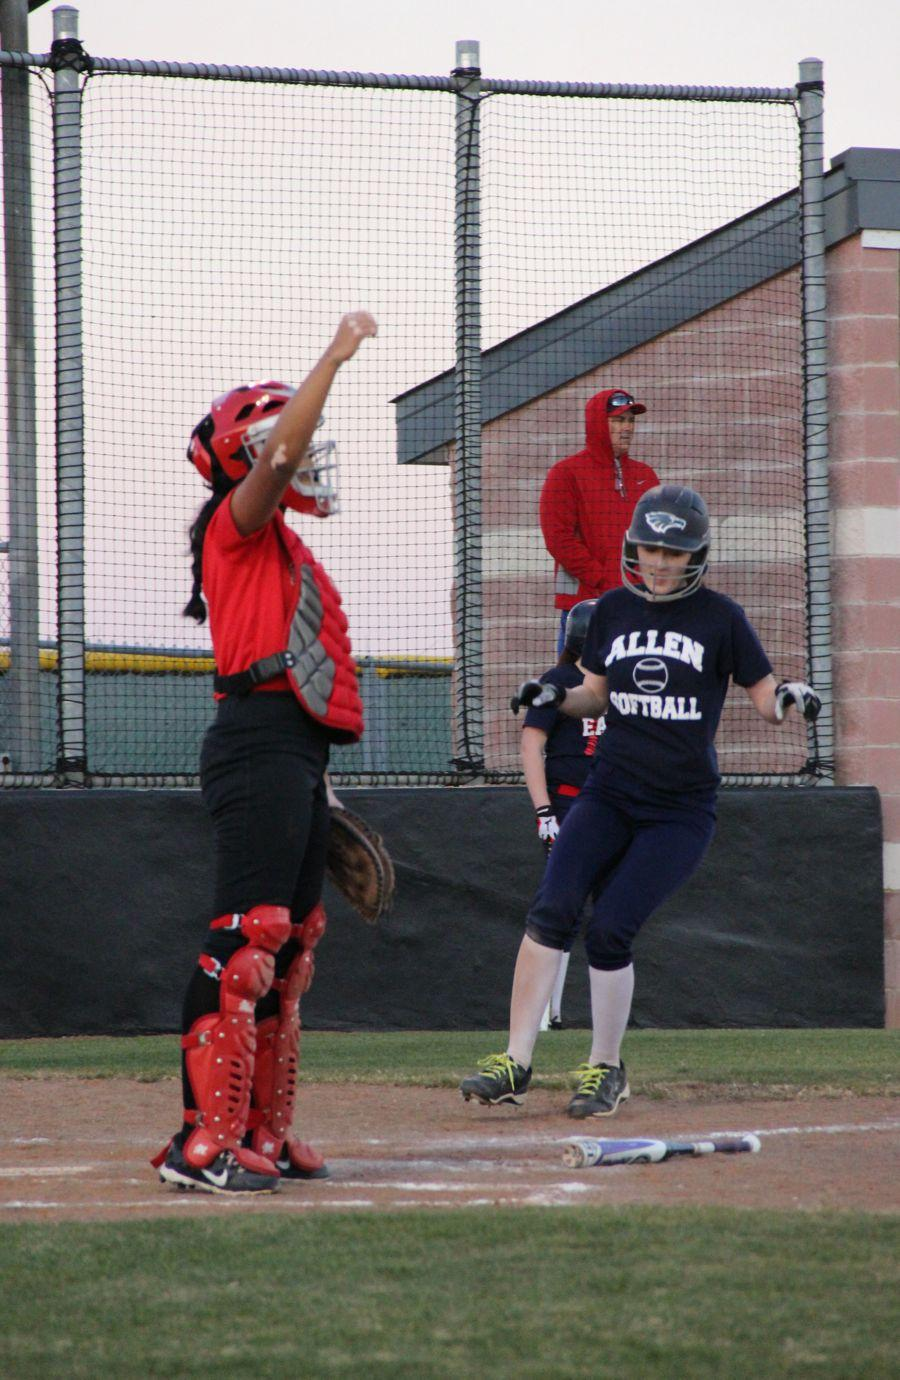 Allen+player+scores+run+while+Coppell+High+School+sophomore+Iris+Loya+waits+for+the+ball+to+come+to+home+plate+on+Monday.+Coppell+JV+II+scrimmaged+against+Allen+at+the+Coppell+ISD+baseball%2Fsoftball+complex.%0A